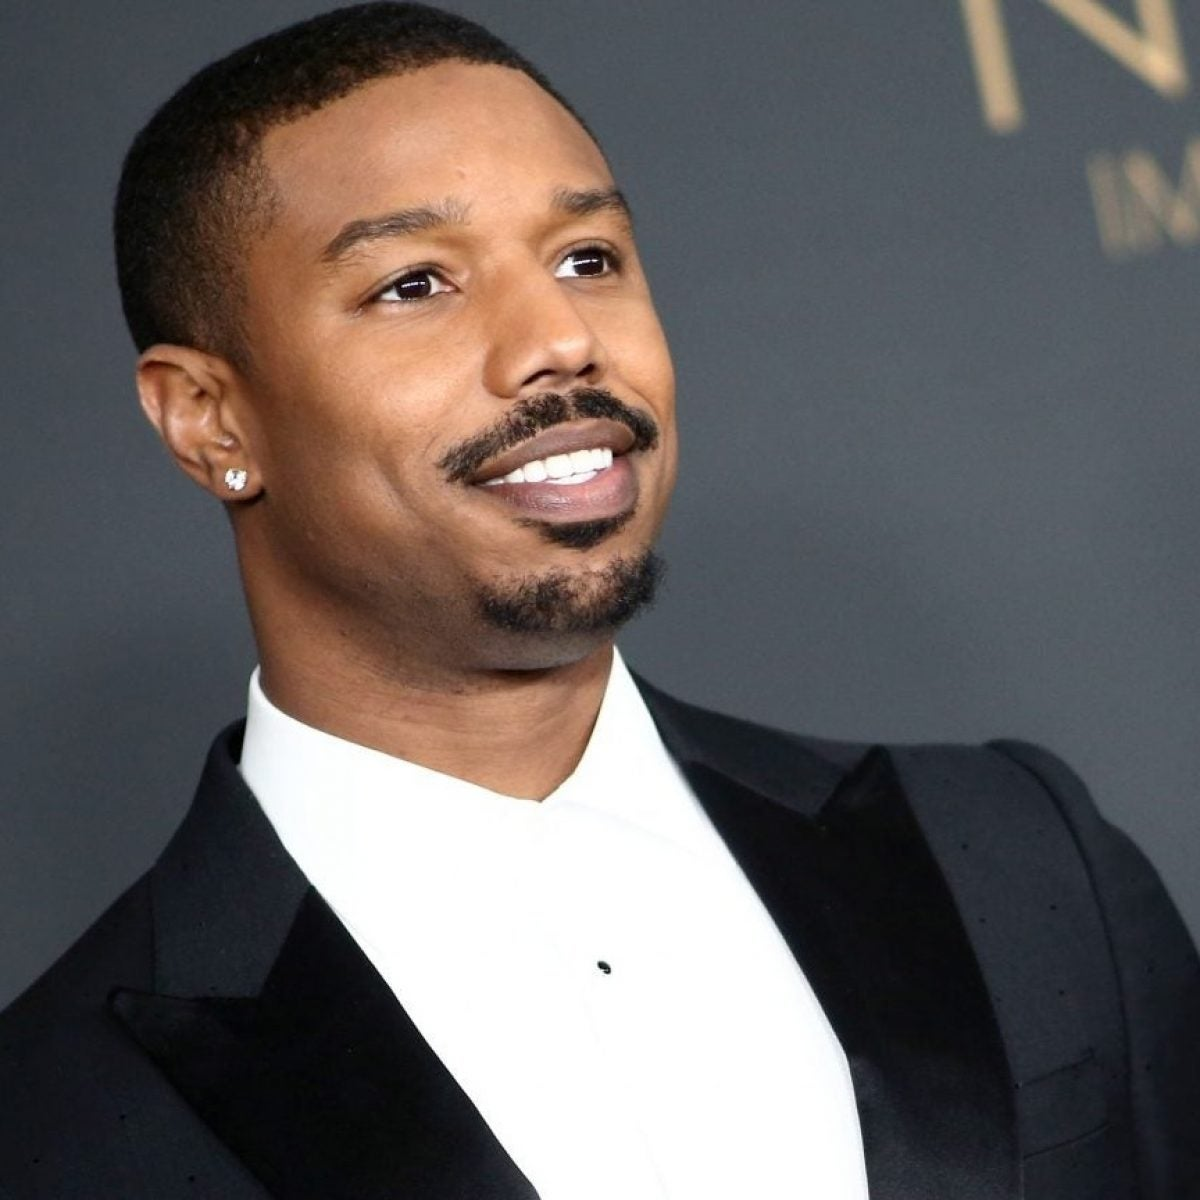 Michael B. Jordan Just Answered Our Prayers and Shared A Sexy Thirst Trap To Encourage Voting